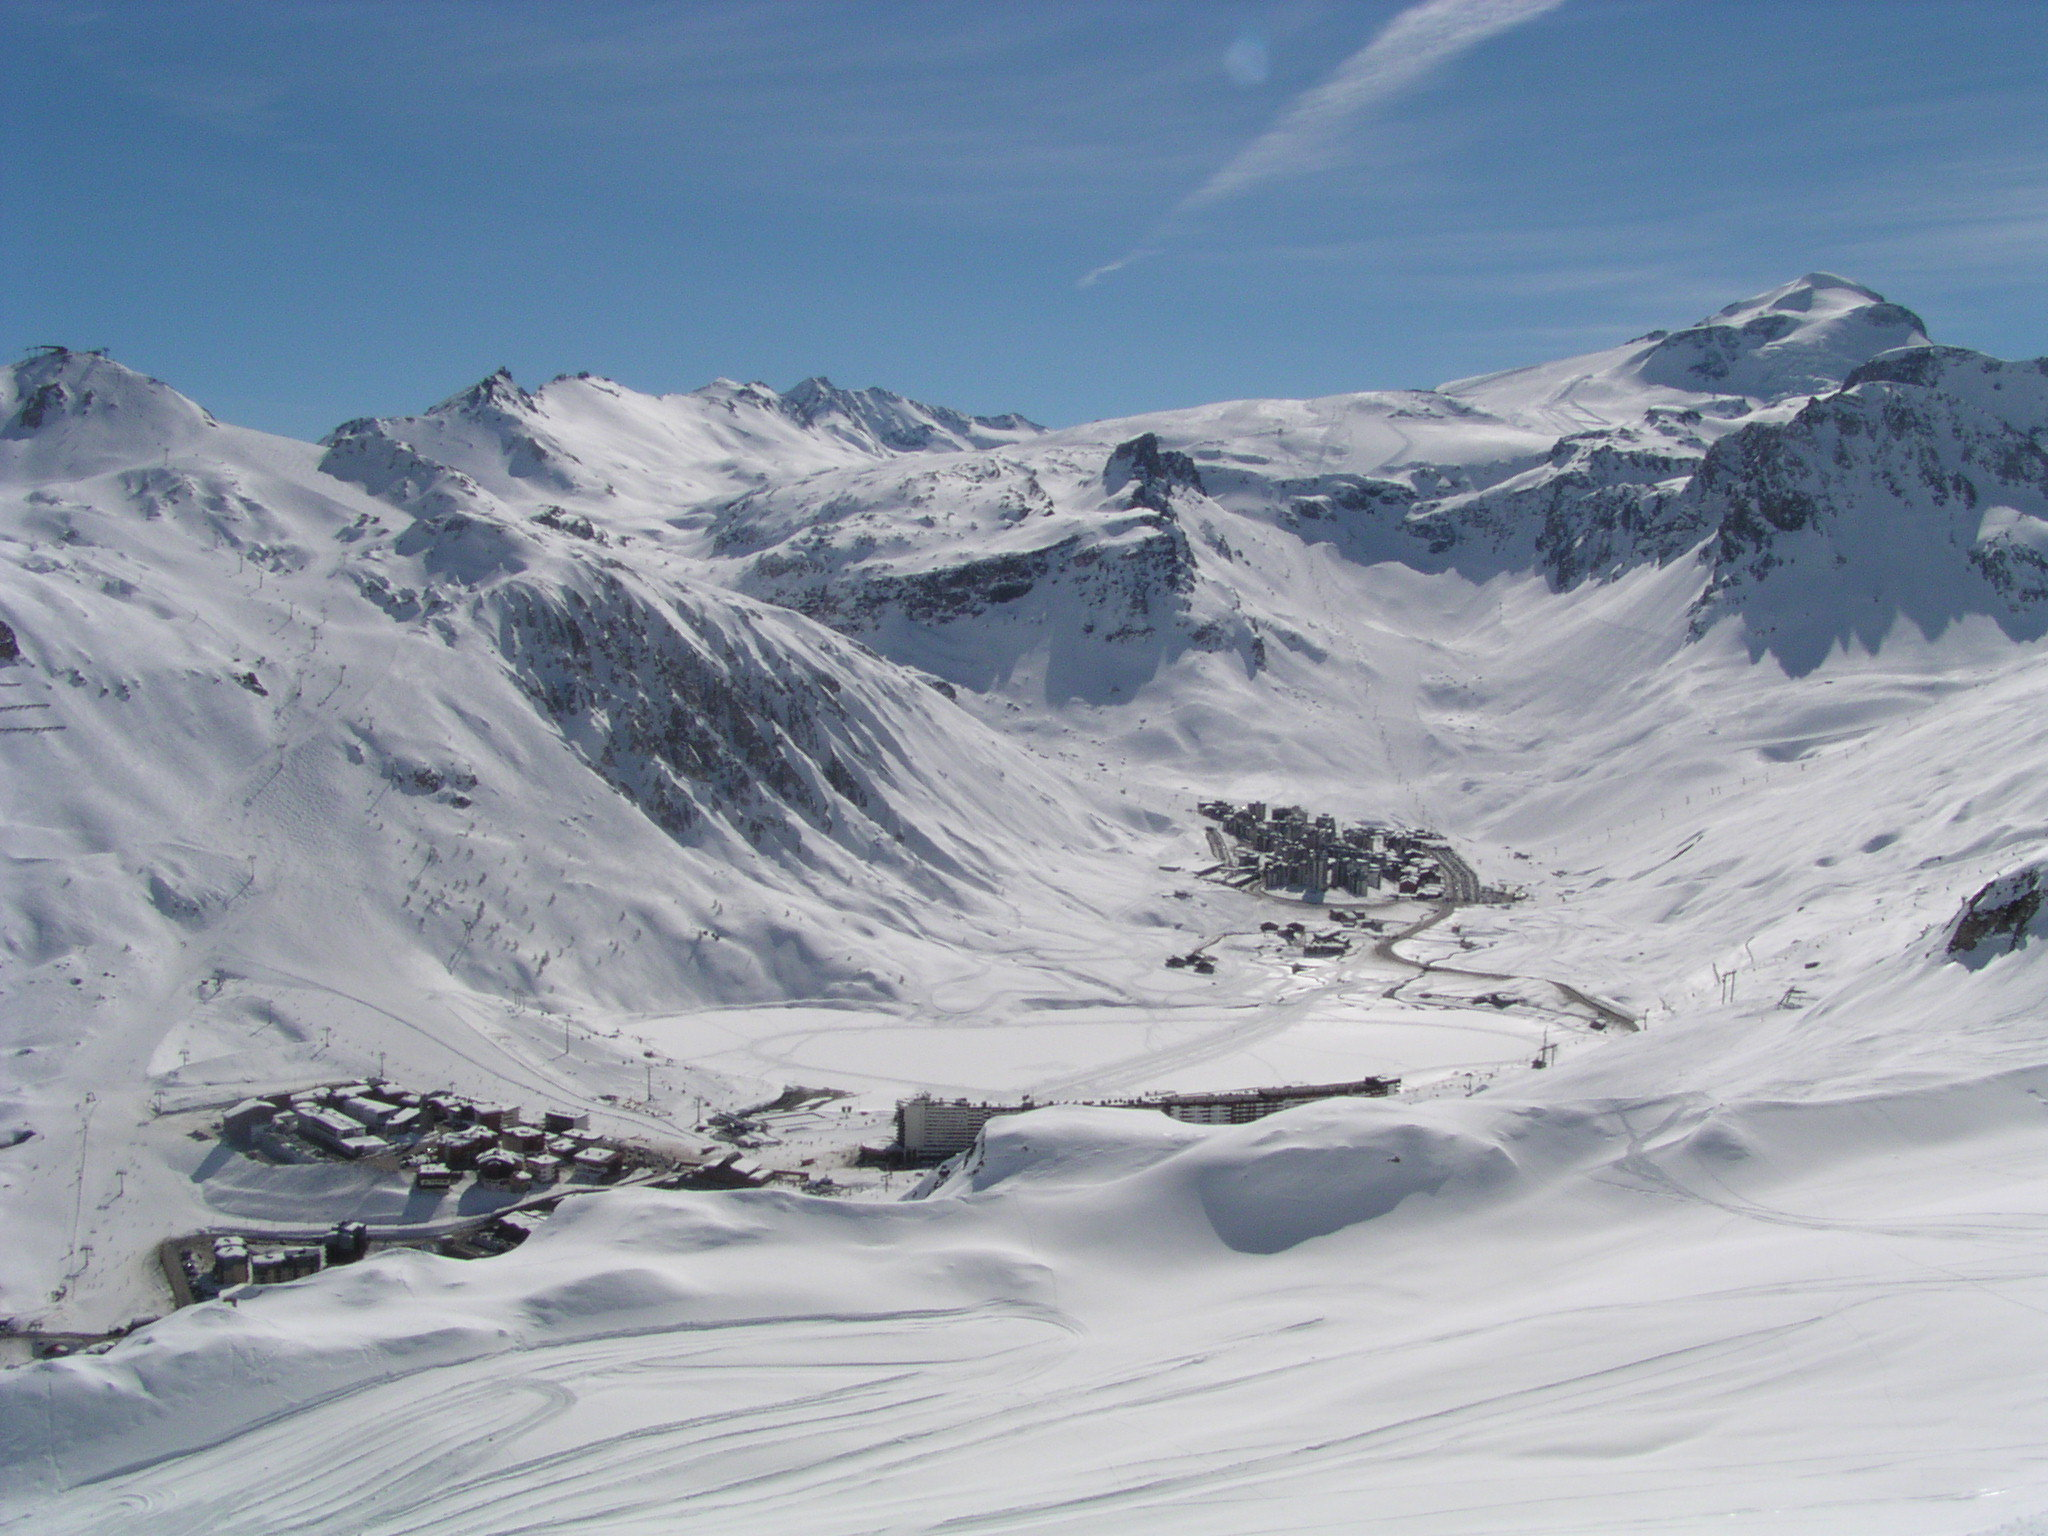 Mountain Valley ski resort Tignes France wallpapers and images 2048x1536